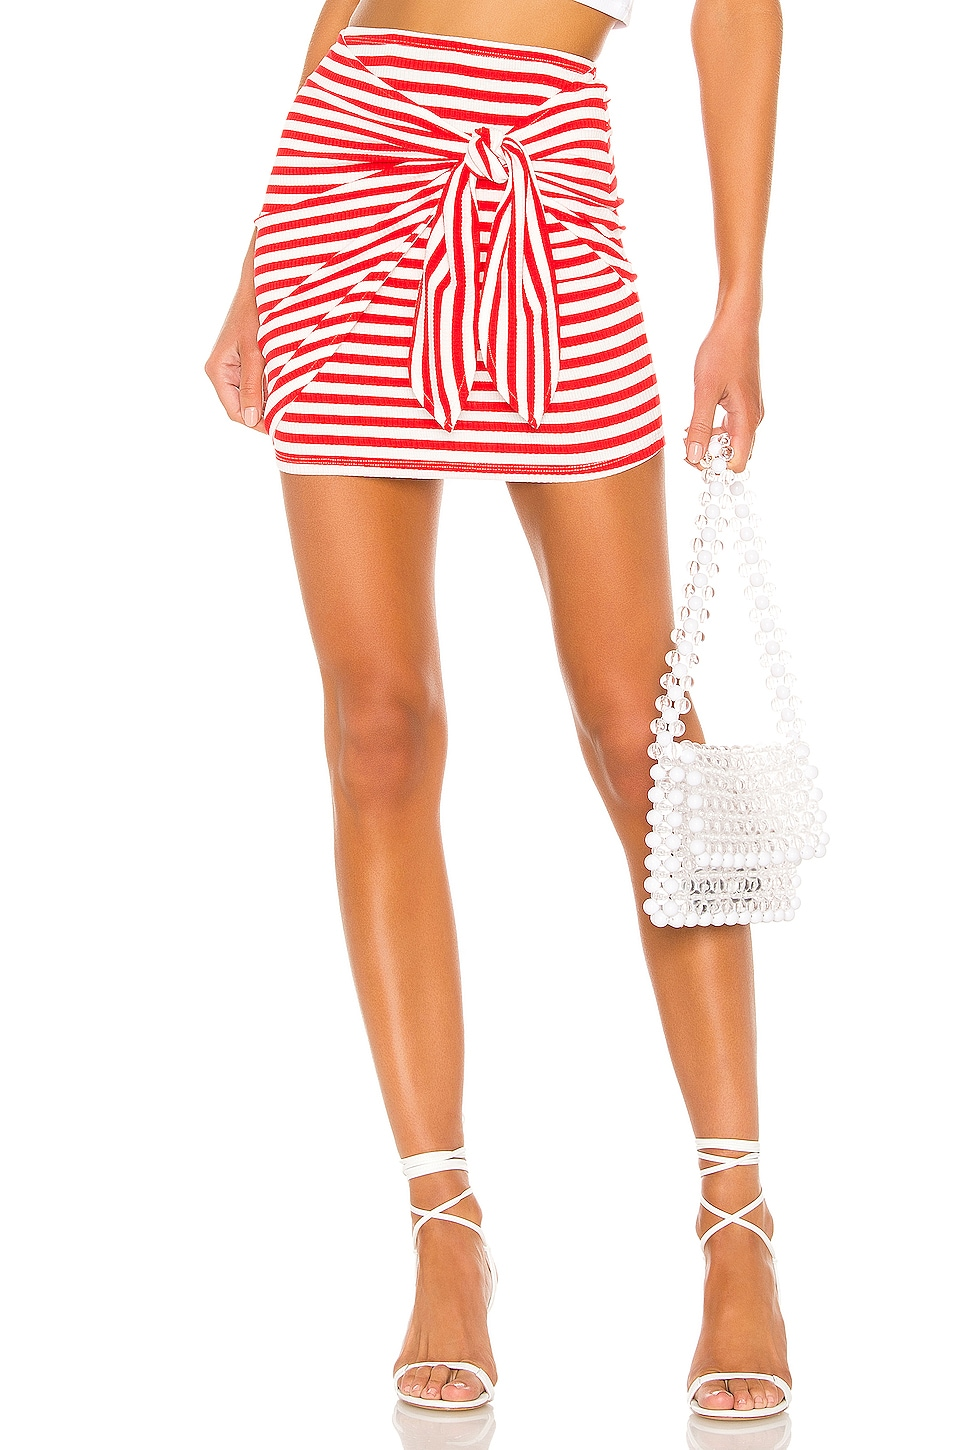 Lovers + Friends Morby Mini Skirt in Red & White